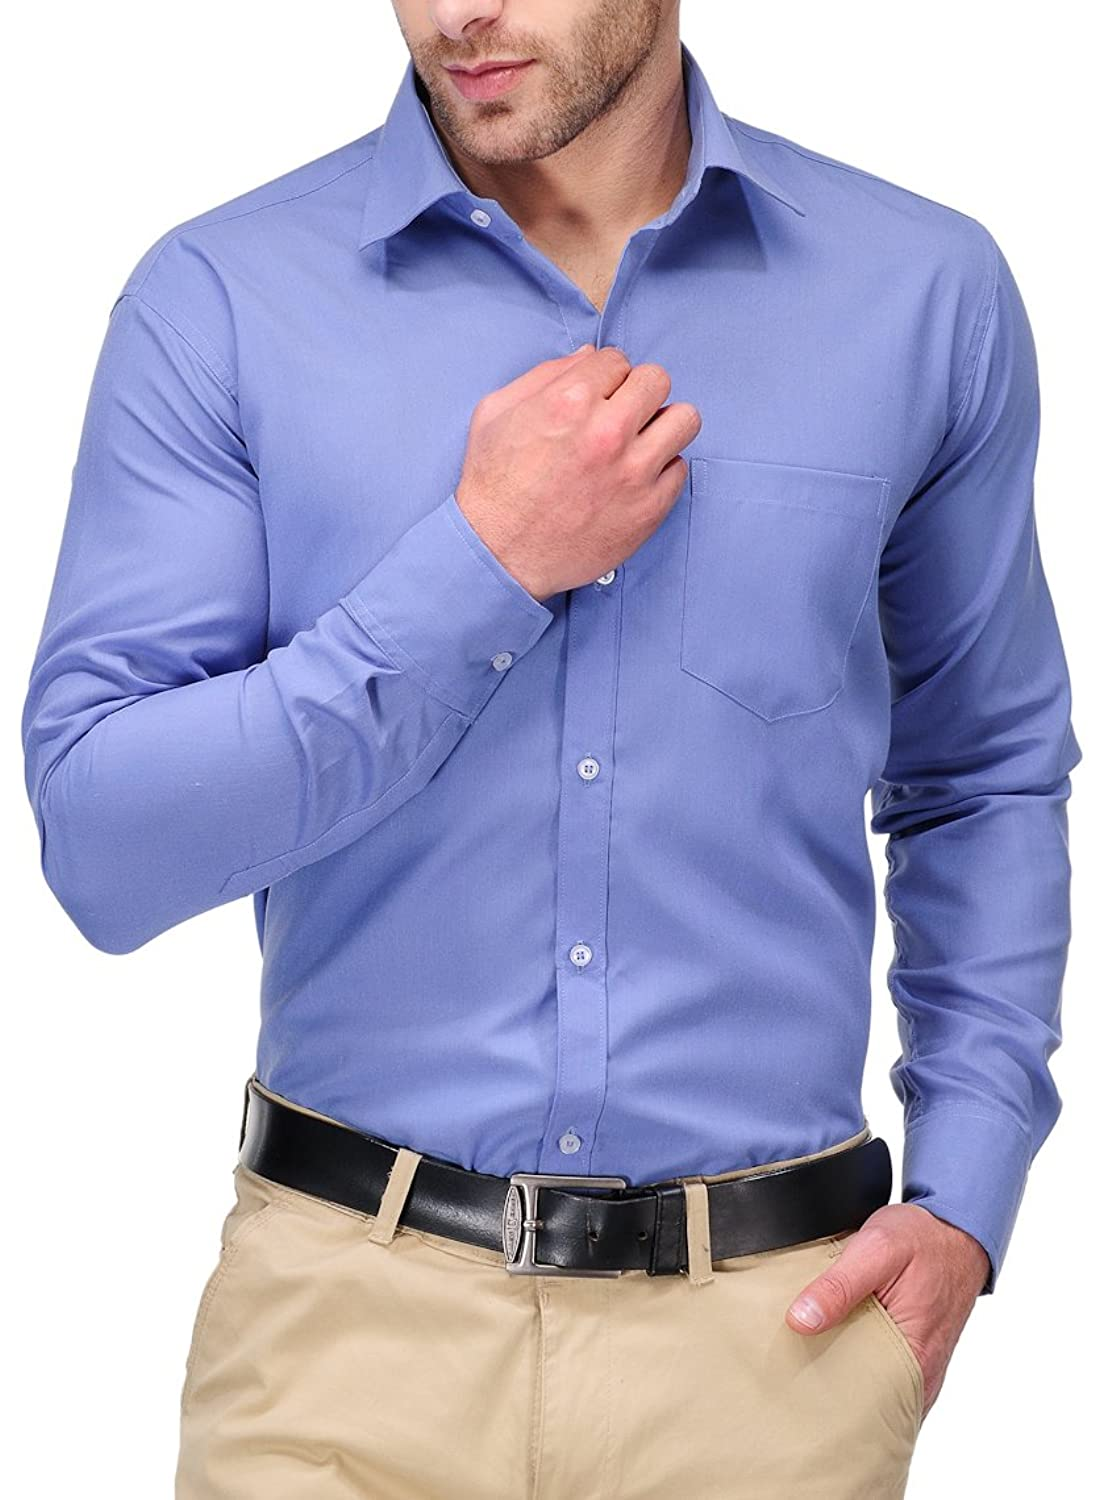 Koolpals Men's Formal Shirt: Amazon.in: Clothing & Accessories